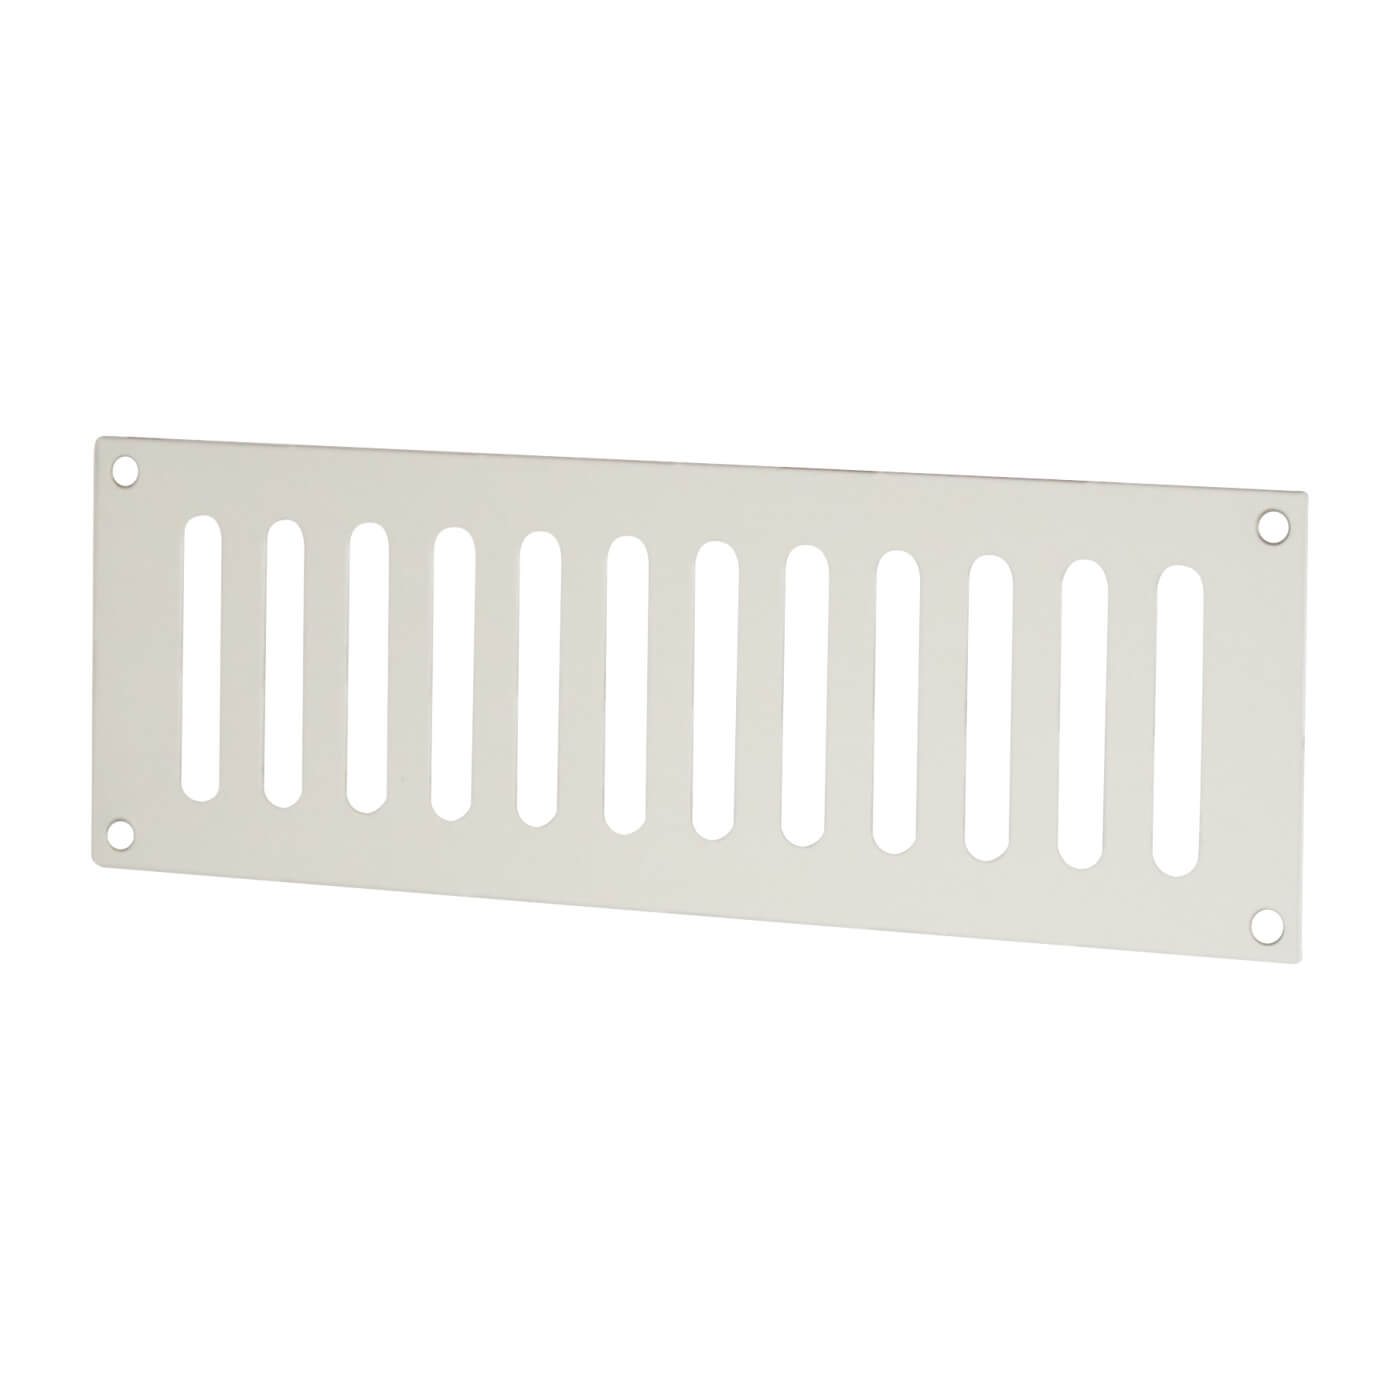 Plain Slotted Vent 229 X 76mm 4800mm2 Free Air Flow